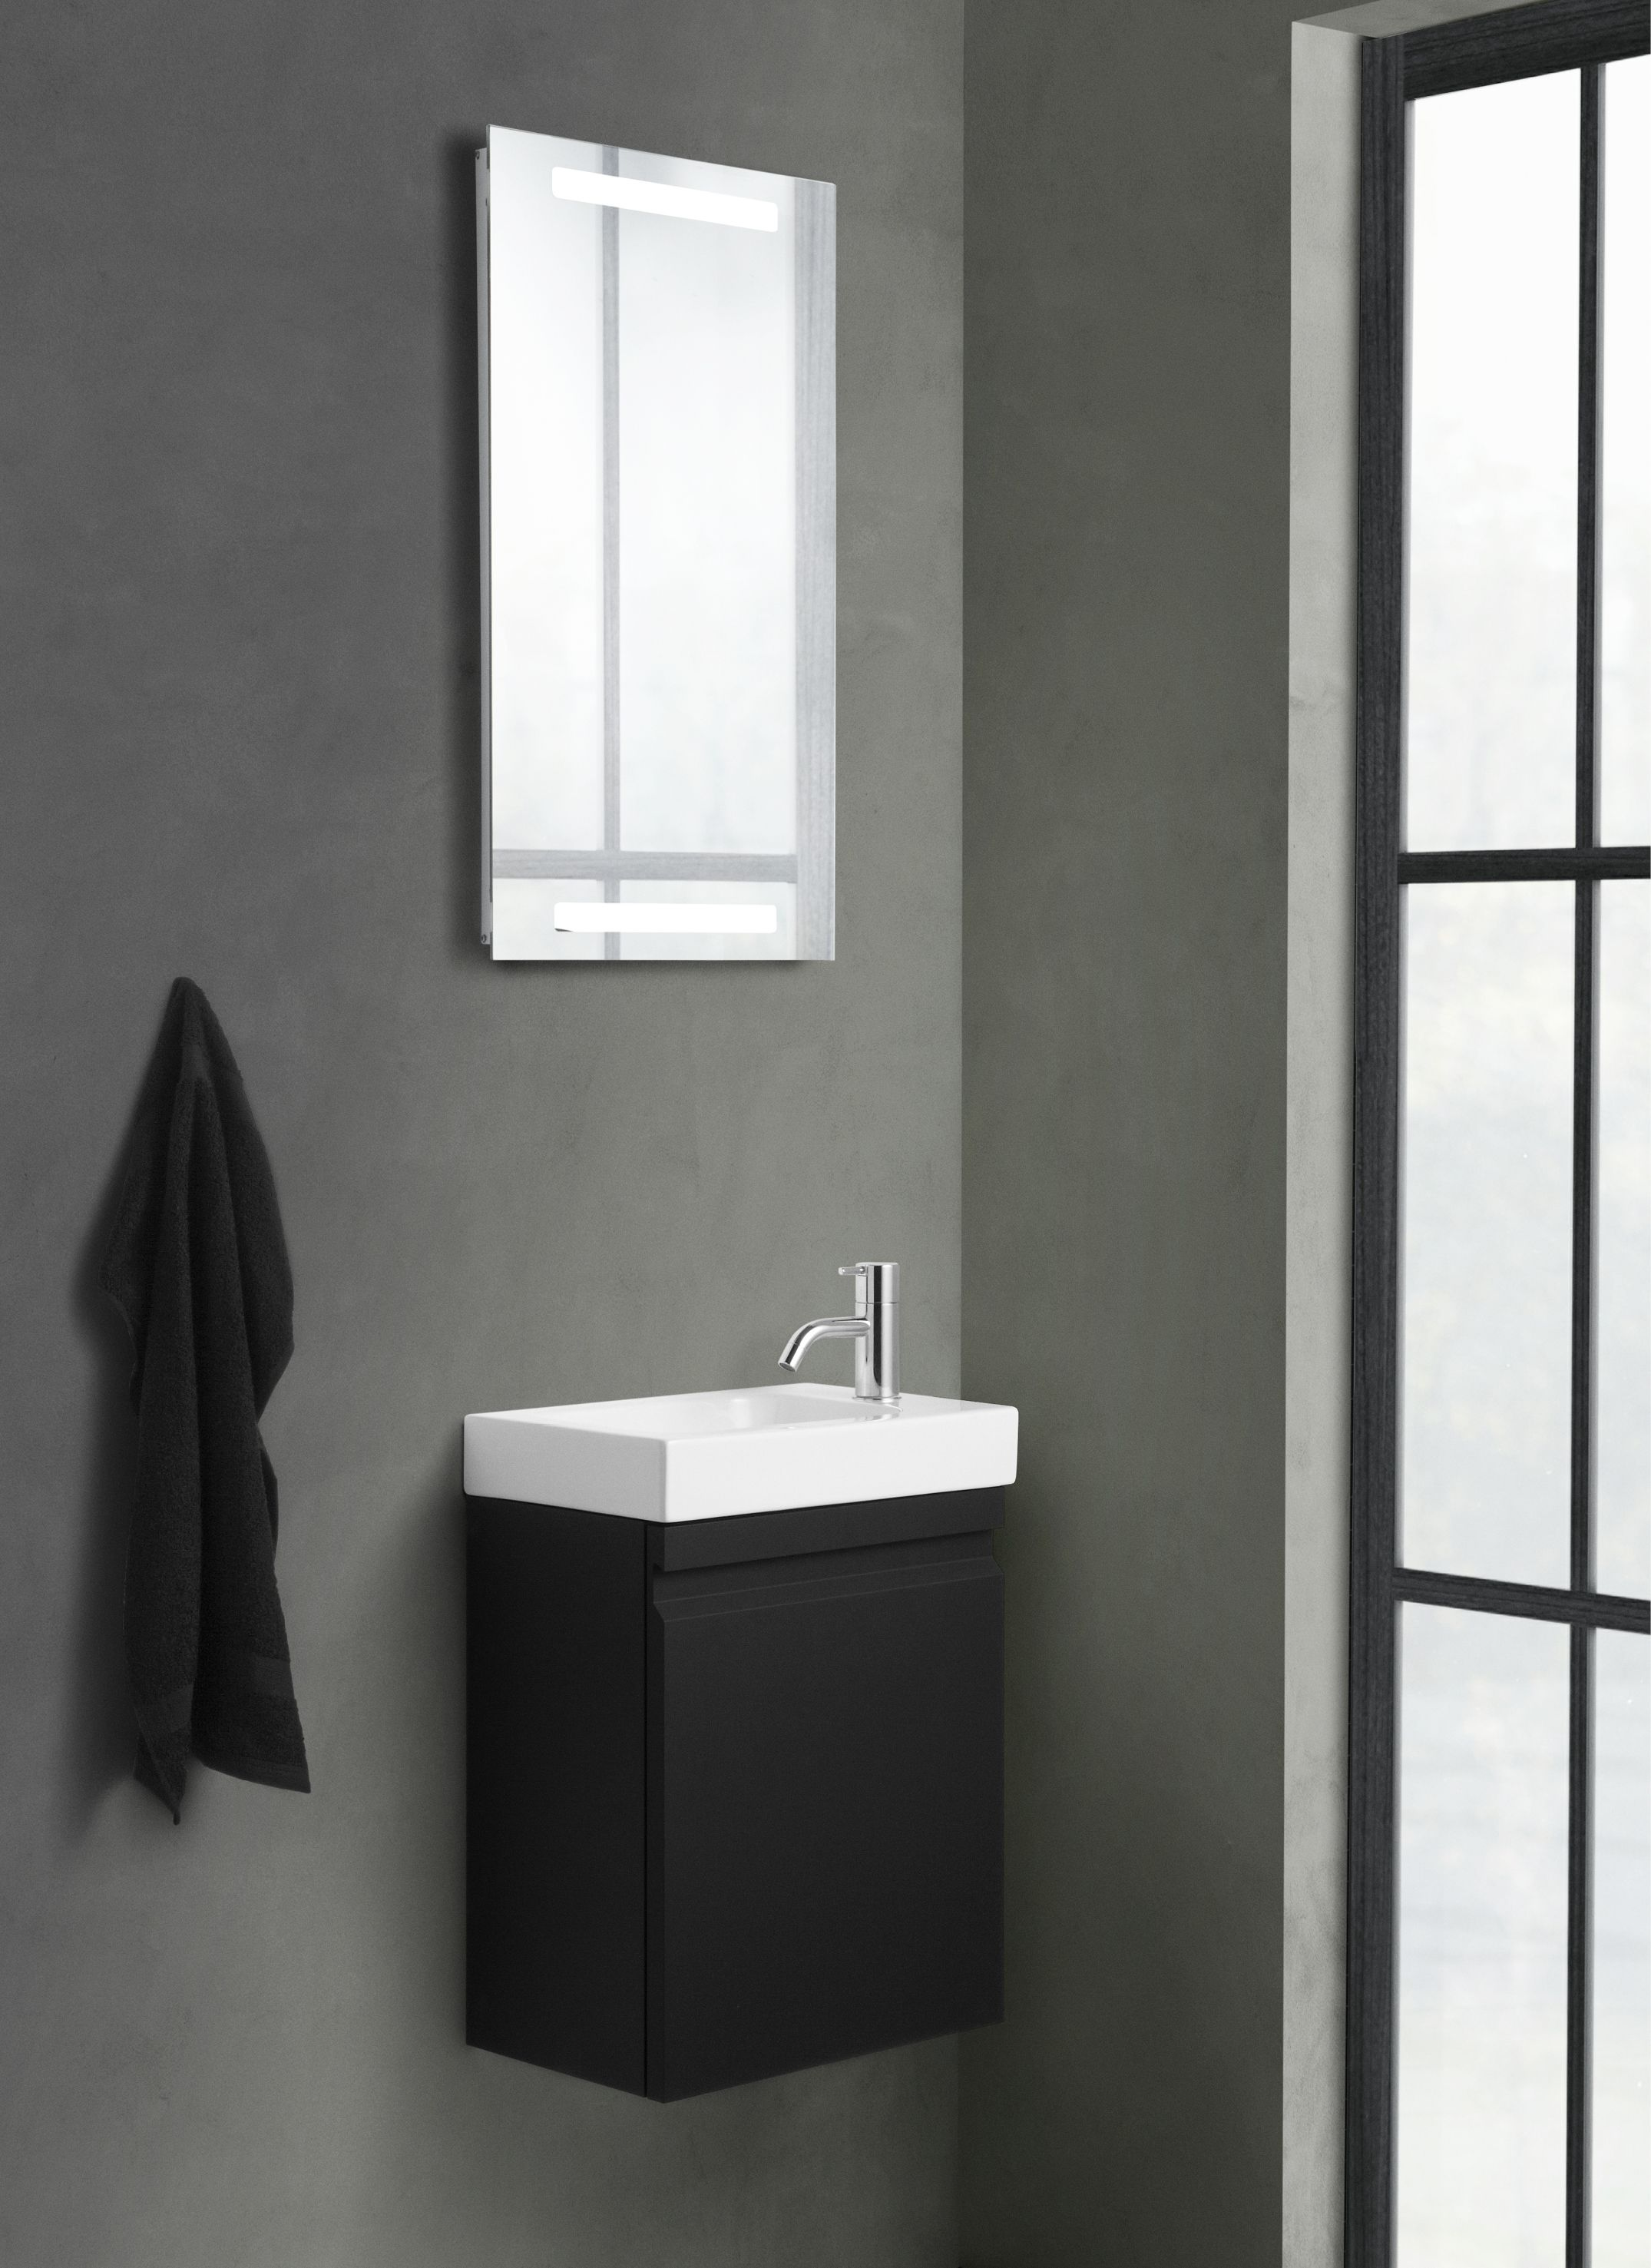 Micro Menuet washbasin for the small and narrow bathroom.